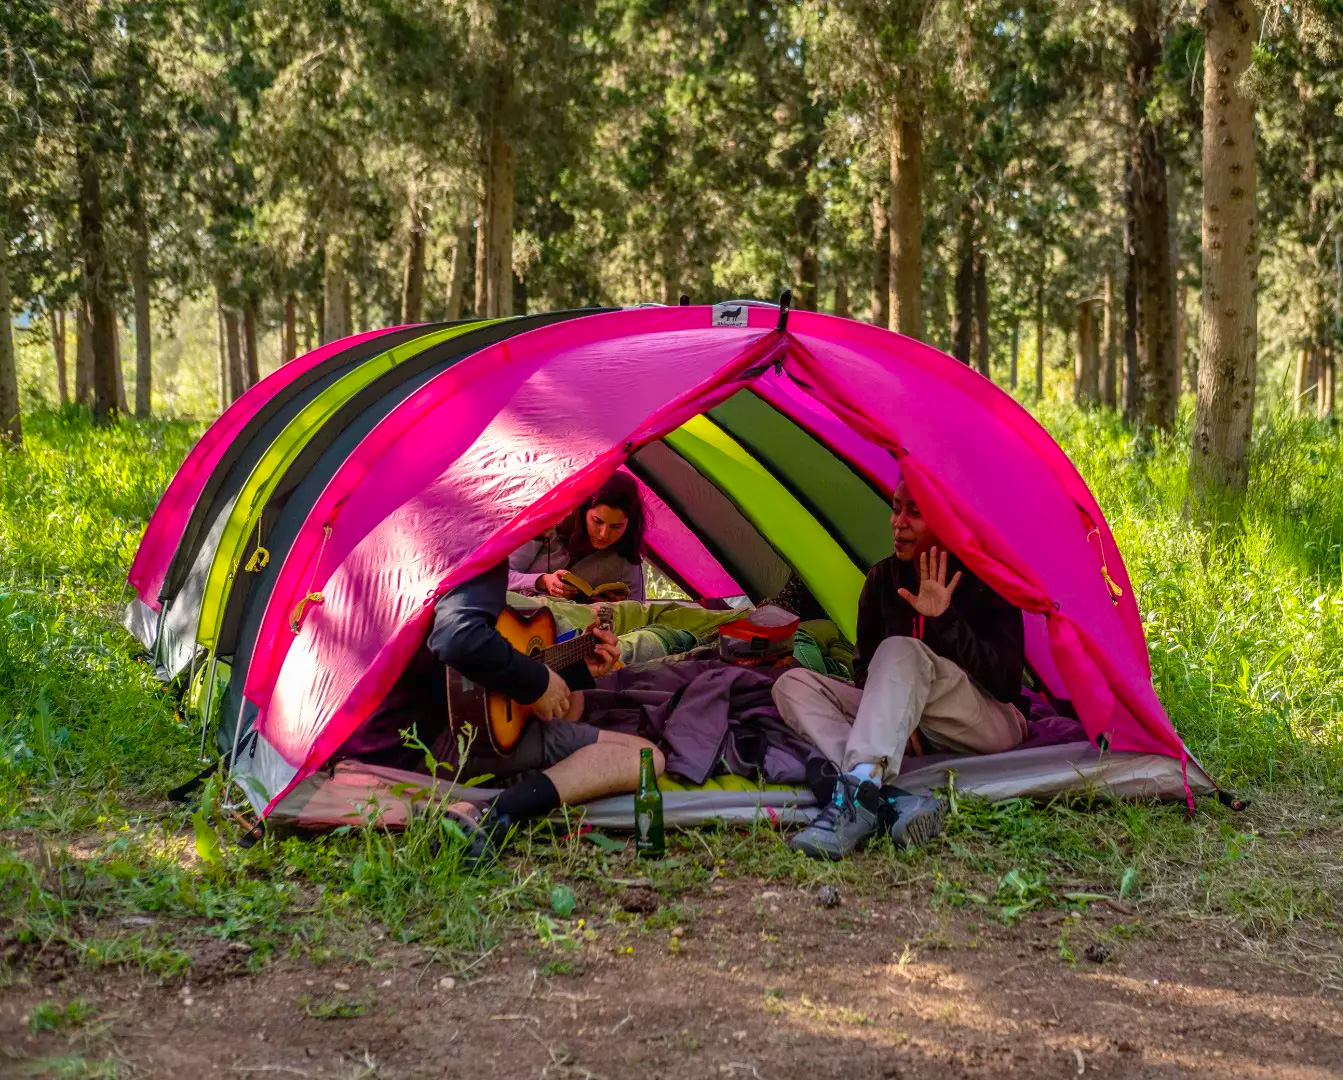 Come Together in the RhinoWolf 2.0 Attachable Tent at werd.com